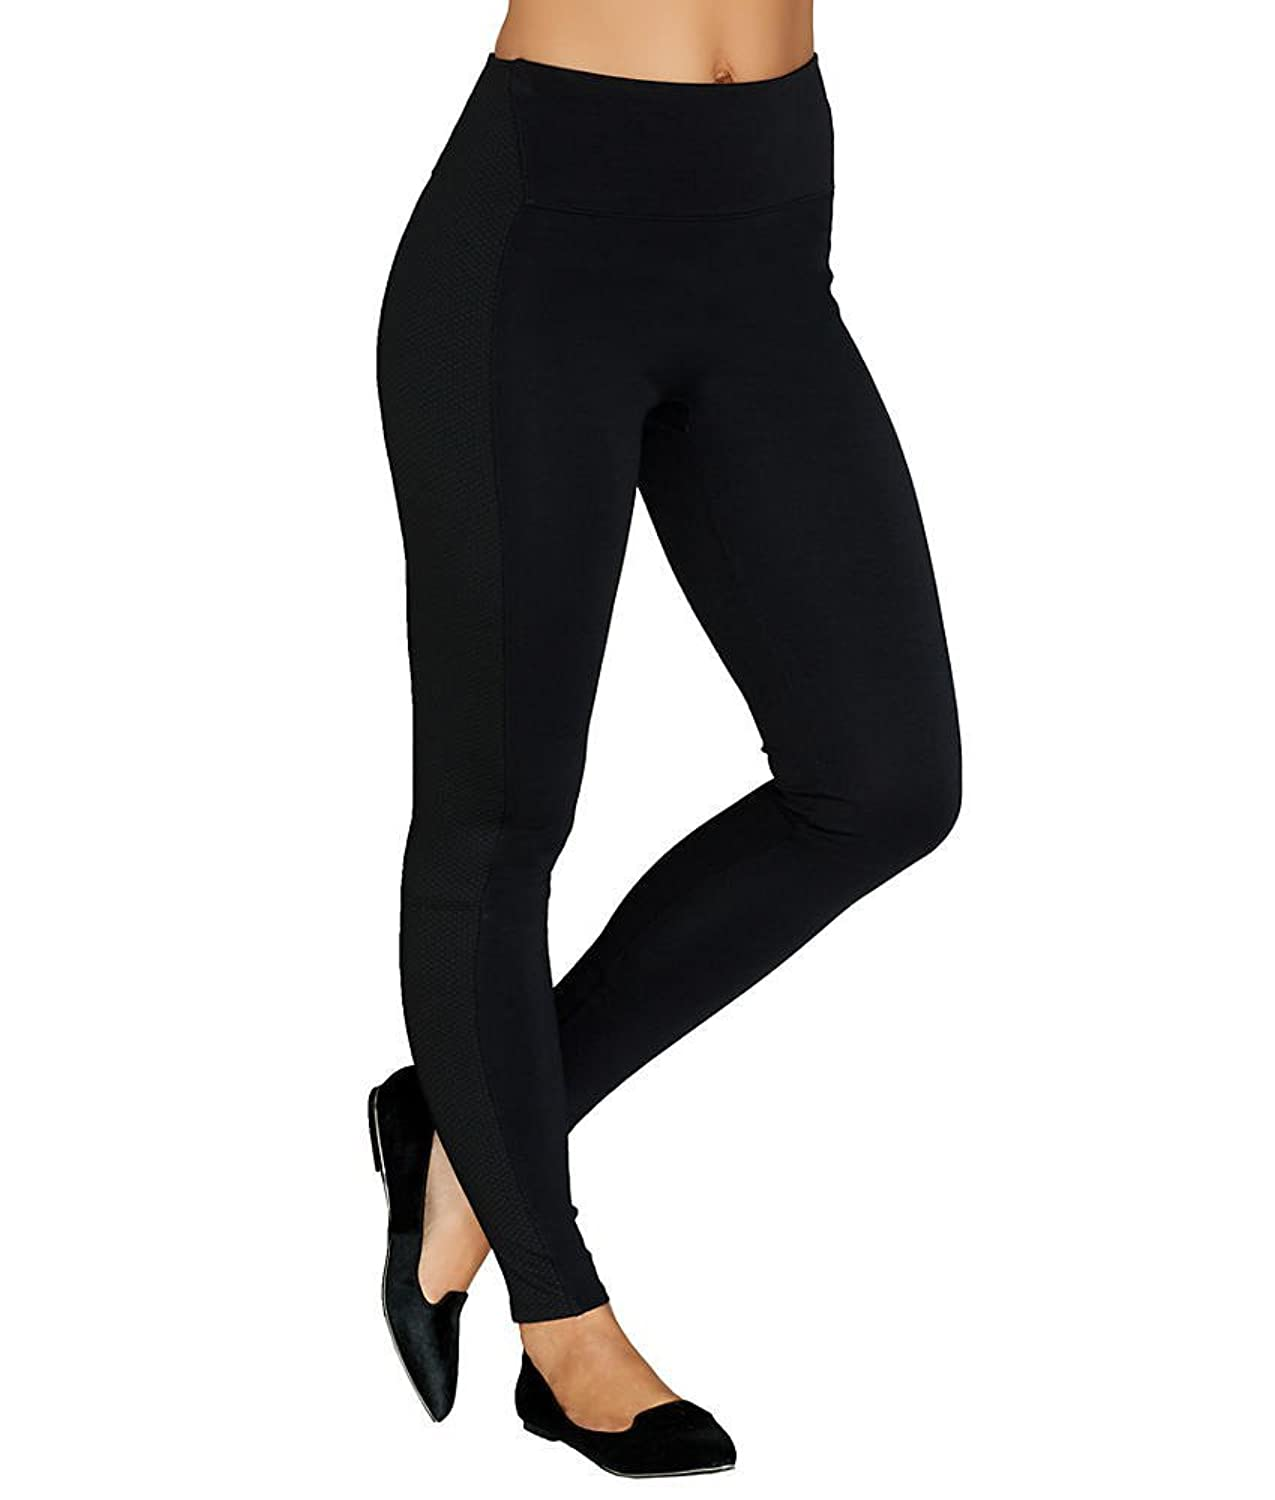 SPANX Women's Textured Panel Leggings